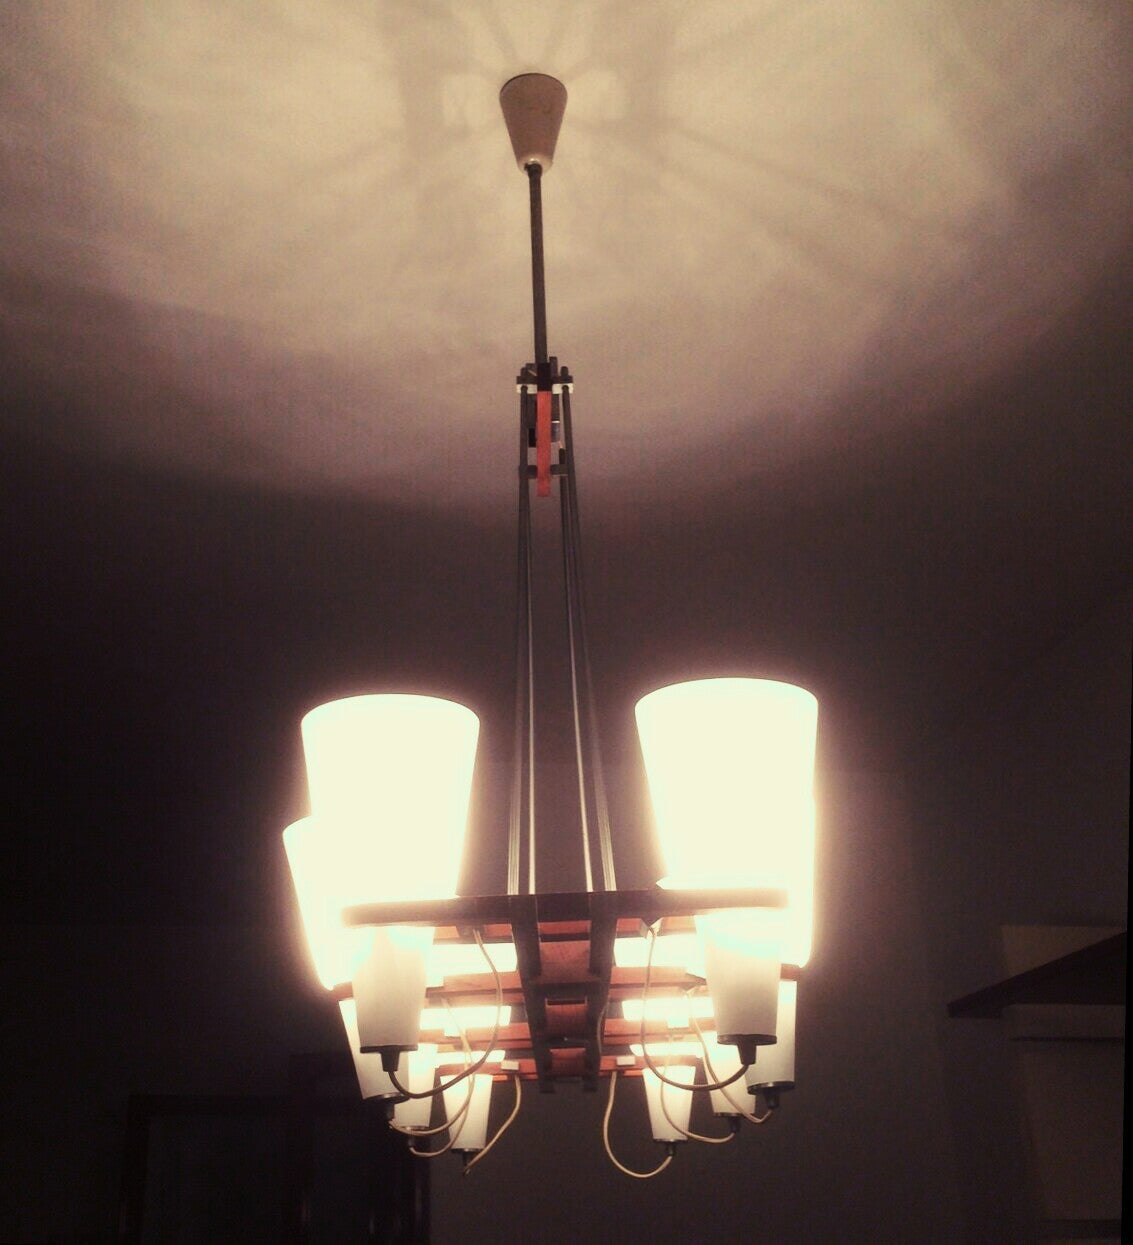 Chandelier attributed to arredoluce 1950 for sale at 1stdibs for Arredo luce